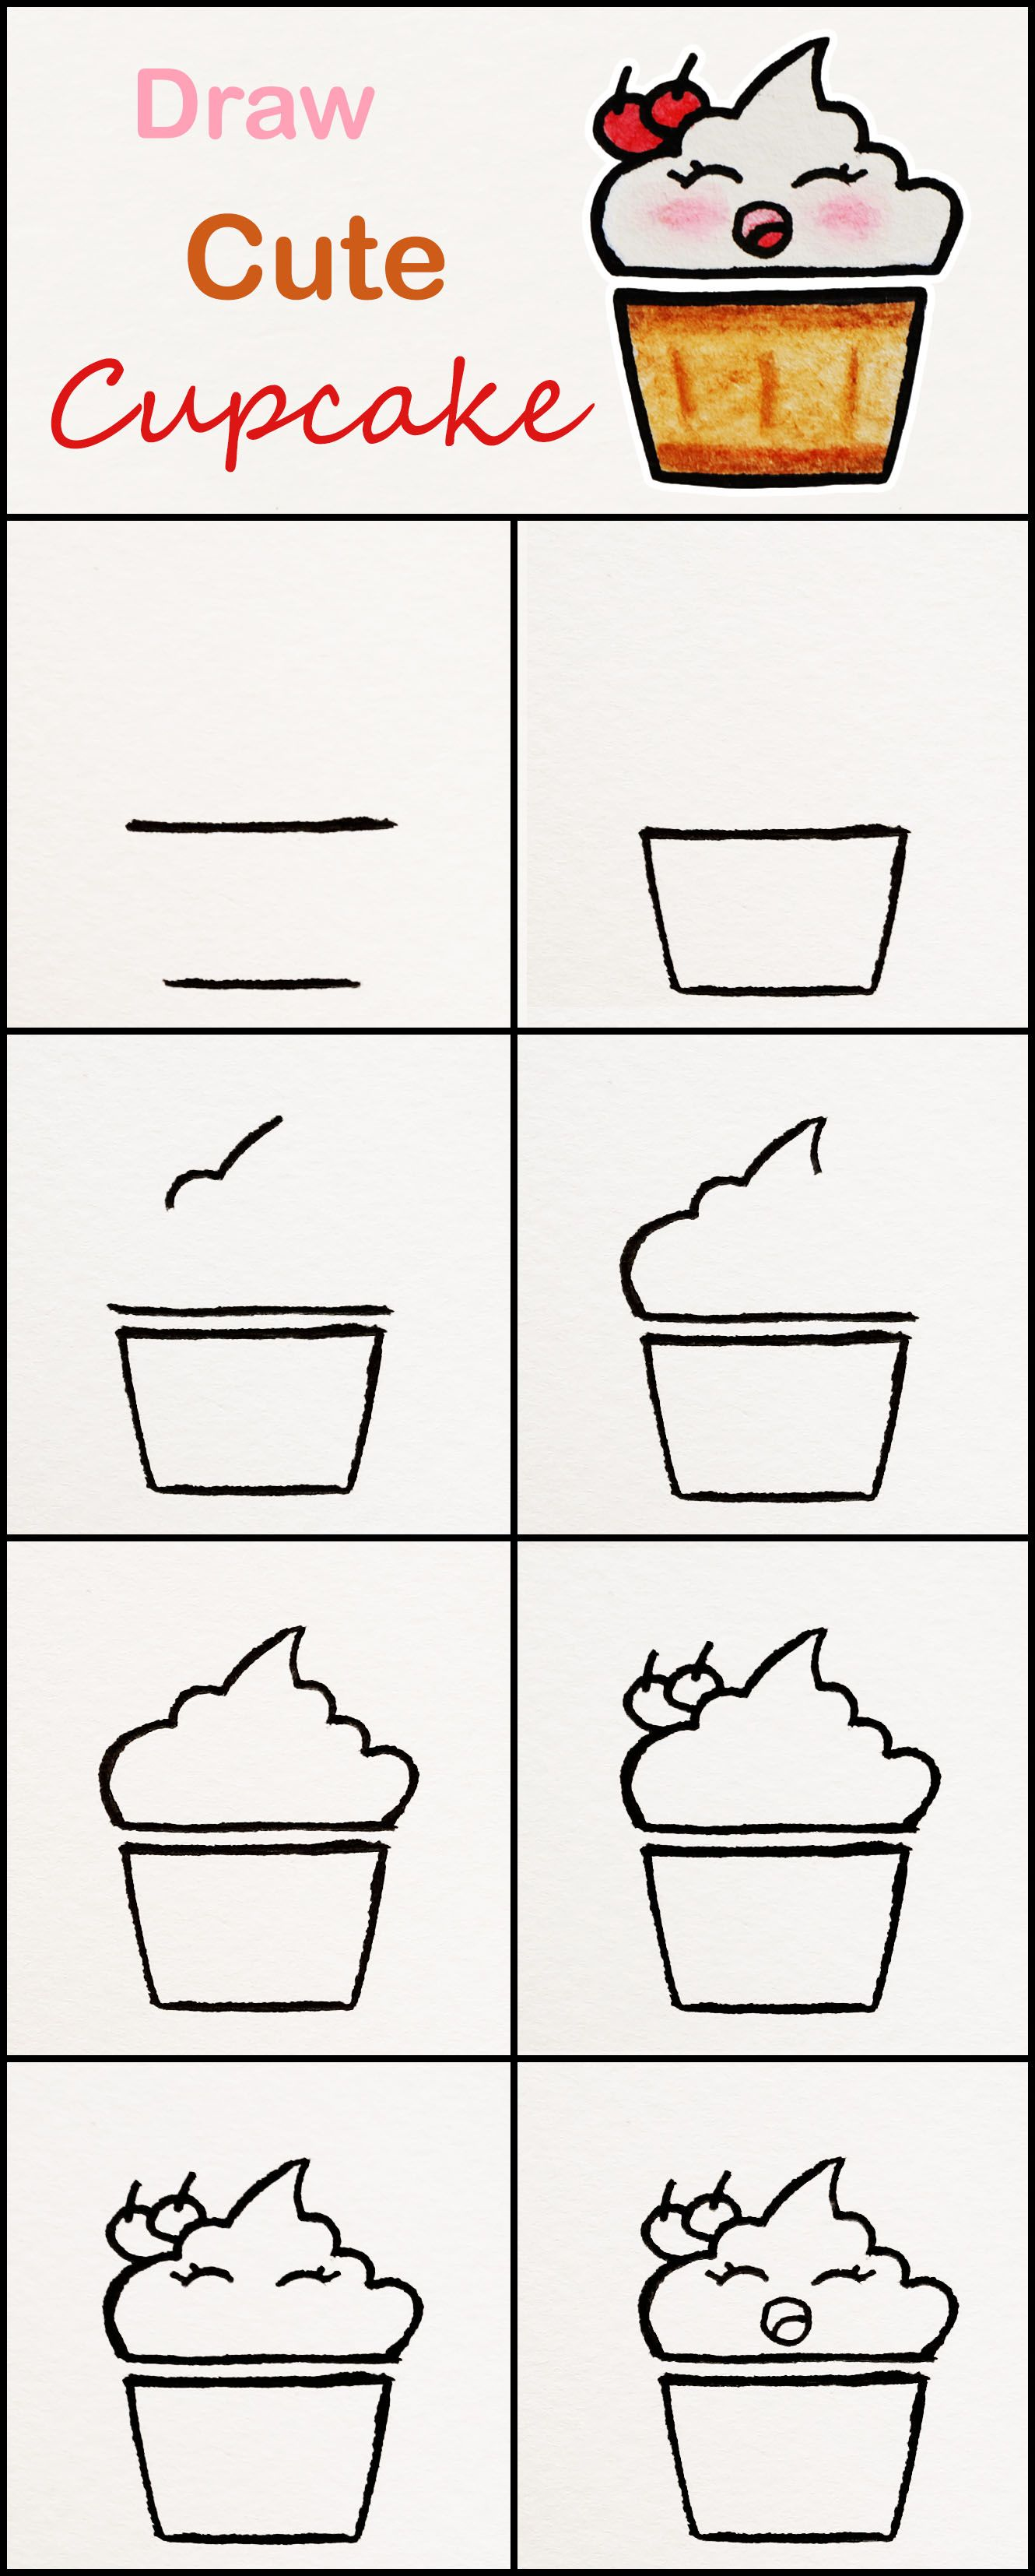 Learn How To Draw A Cute Cupcake Step By Step Very Simple Tutorial Cupcake Drawings Kawaii Tutorial Cute Easy Drawings Cupcake Drawing Kawaii Drawings